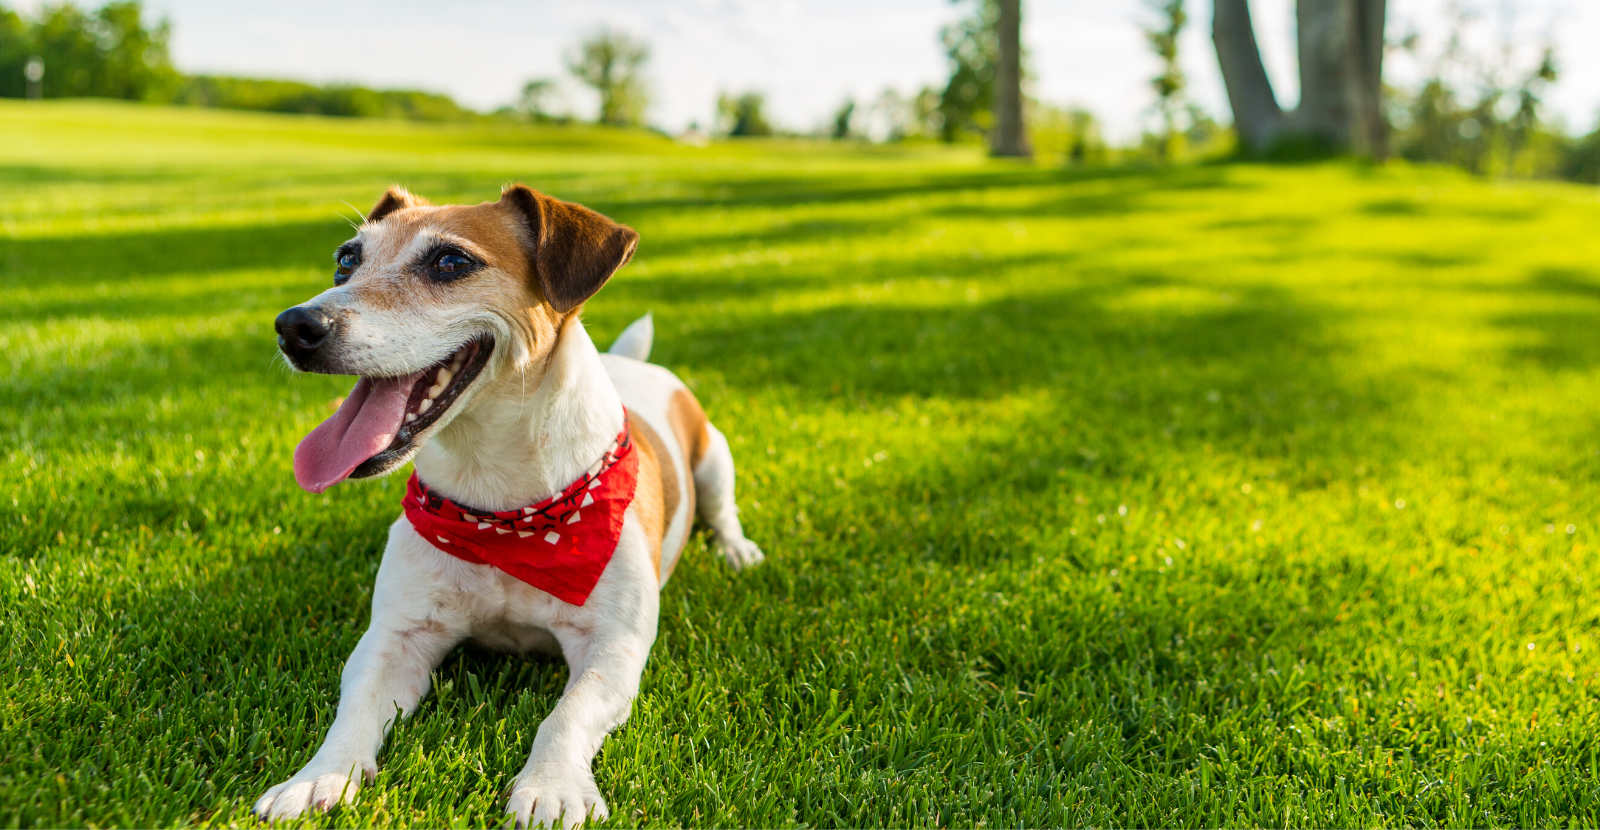 3 Summer Safety Tips Every Dog Parent Should Know